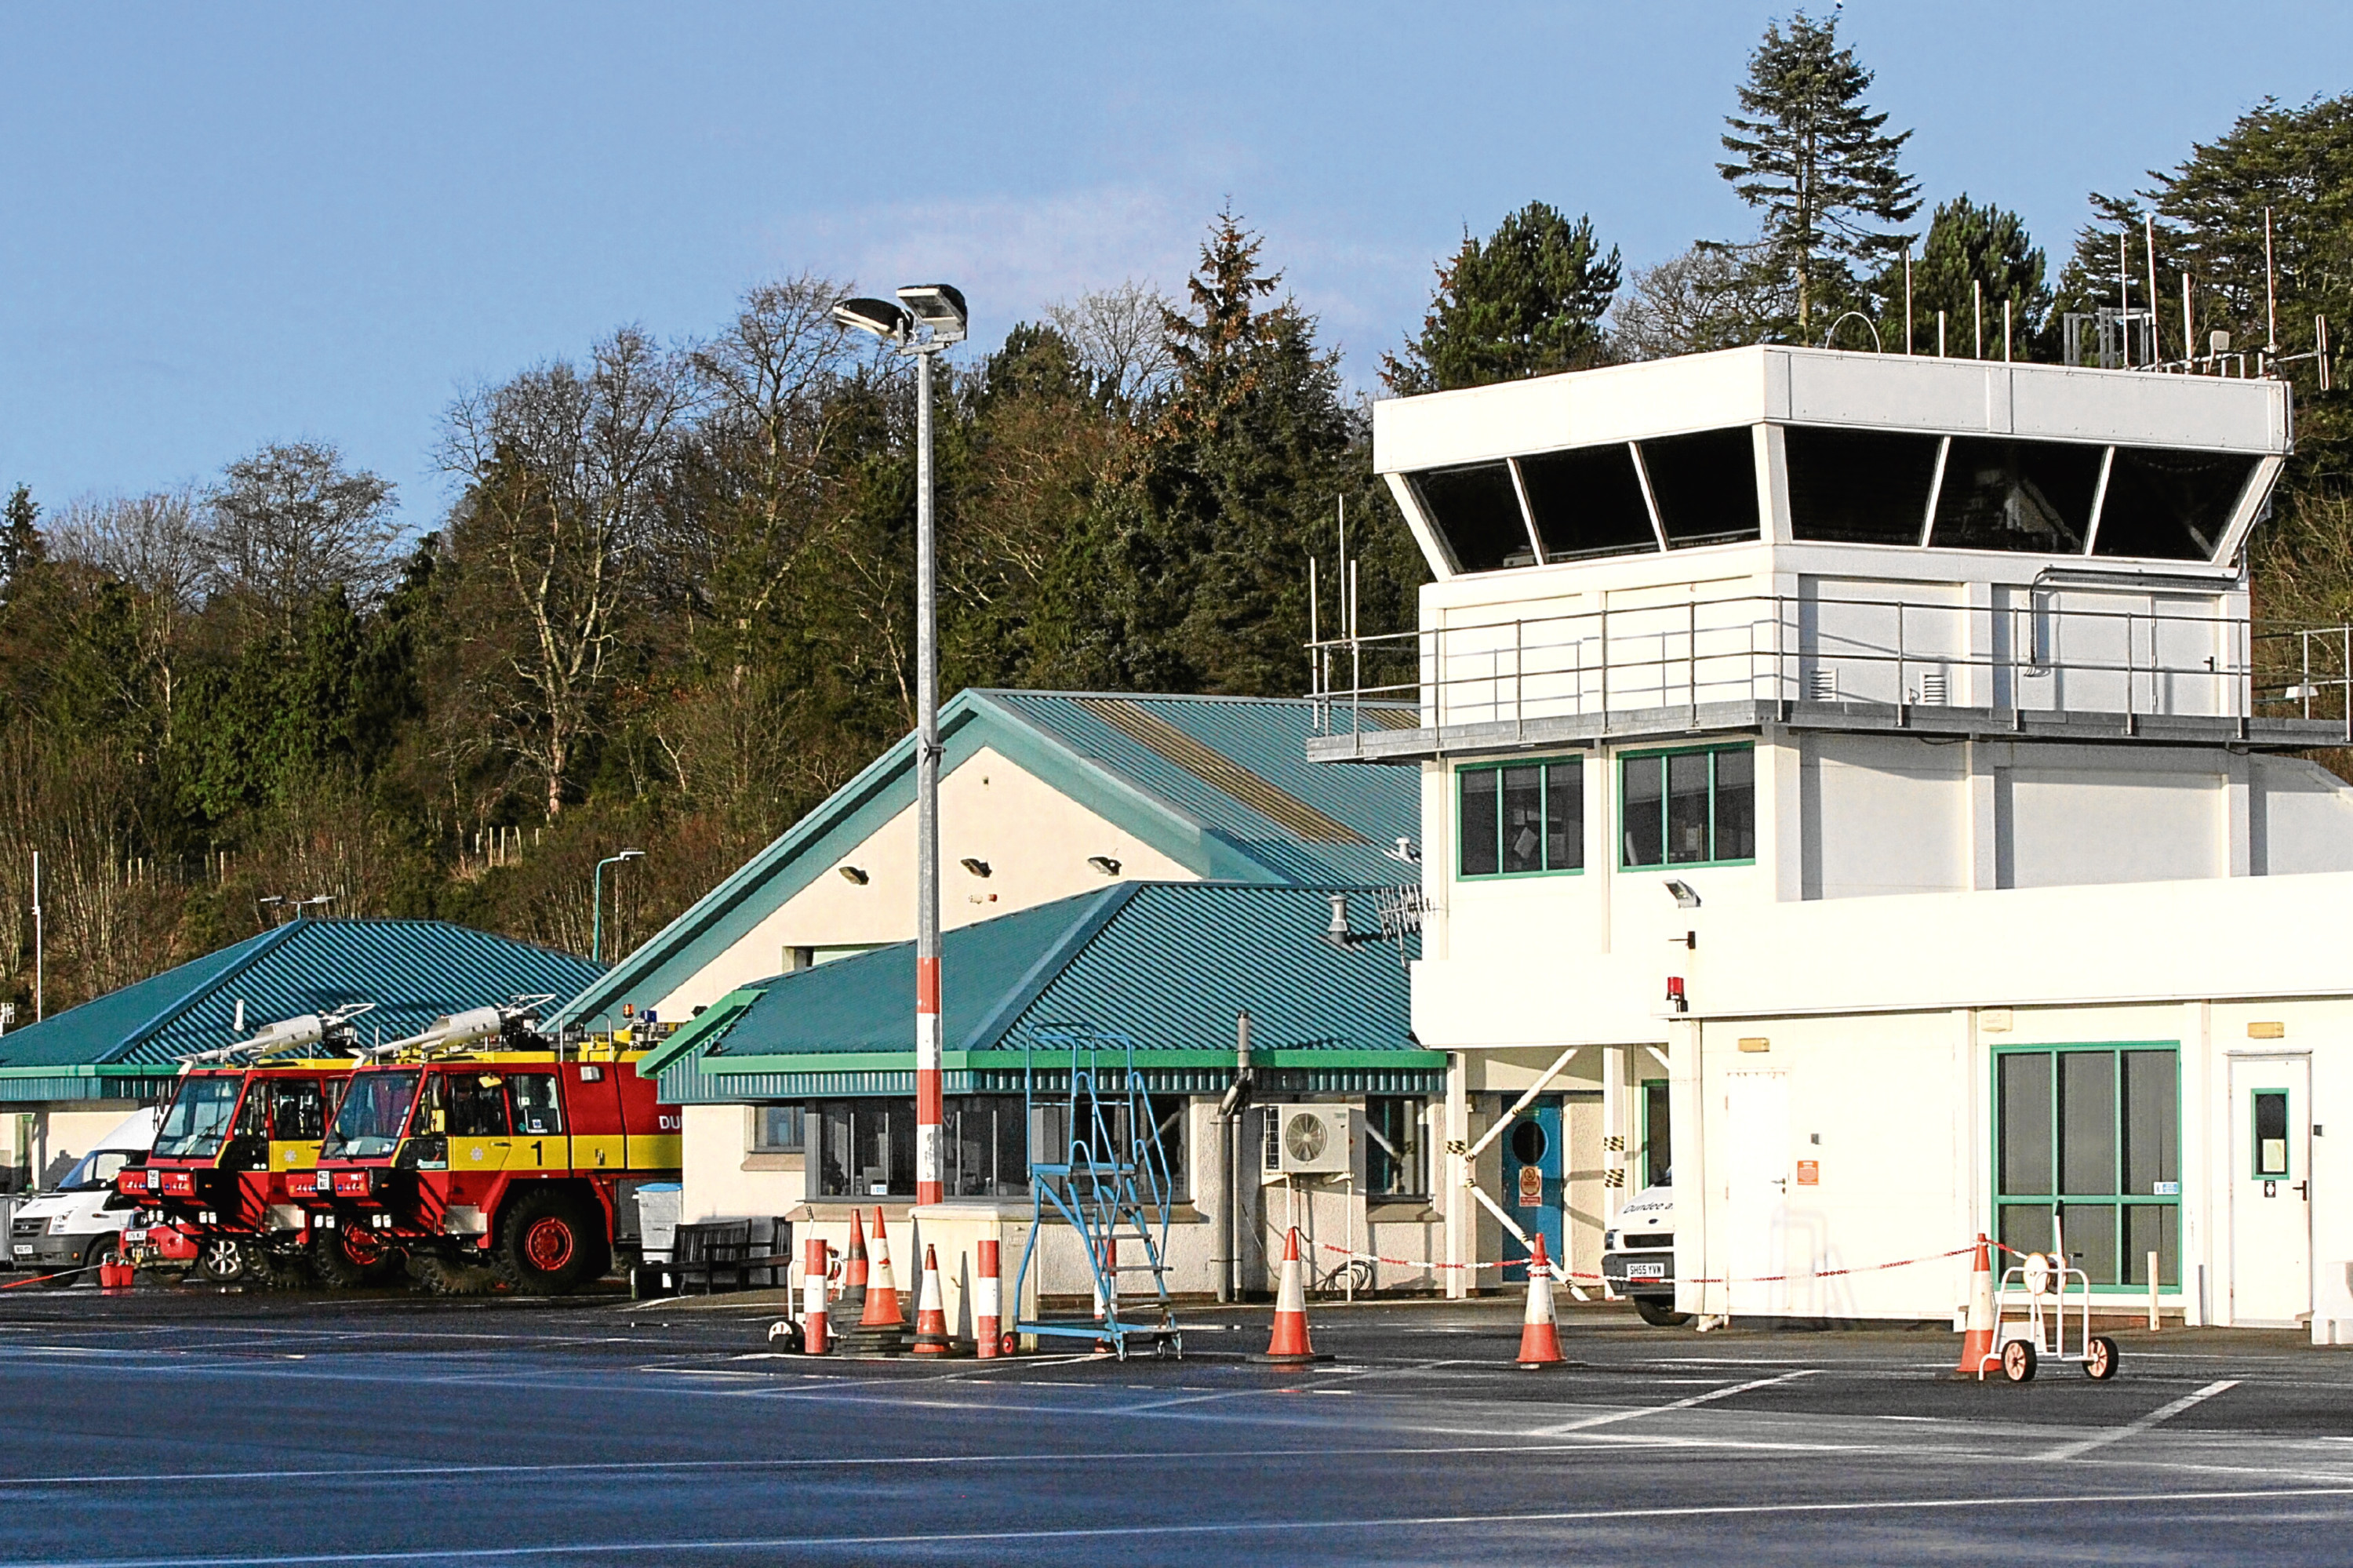 Dundee Airport's main terminal building. The hub currently has routes to London Stansted and Amsterdam —	but has now lost its summer service to Jersey.